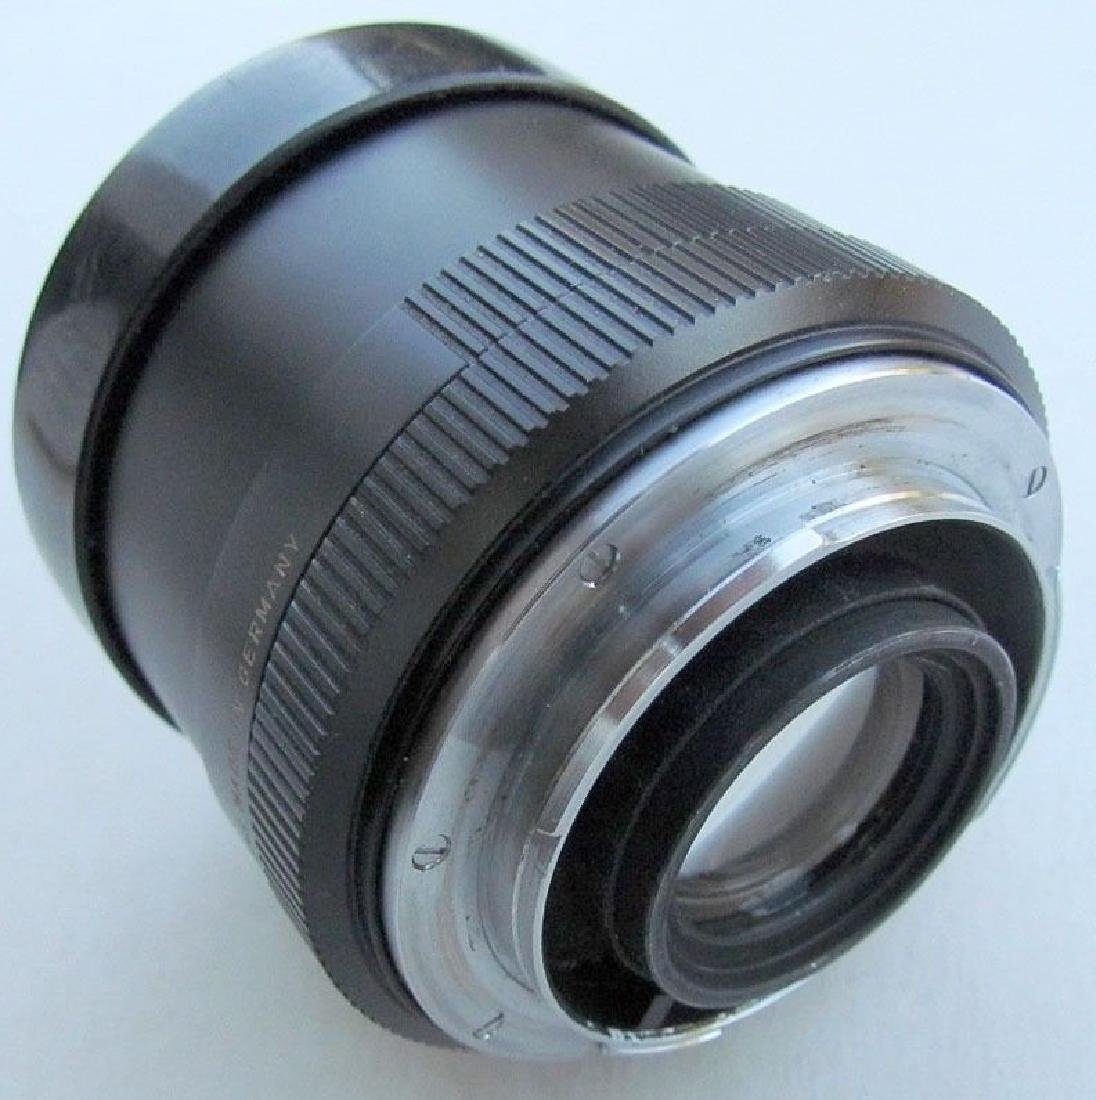 LEICA PHOTO CAMERA LENS LEITZ WETZLAR 2280137 - 3